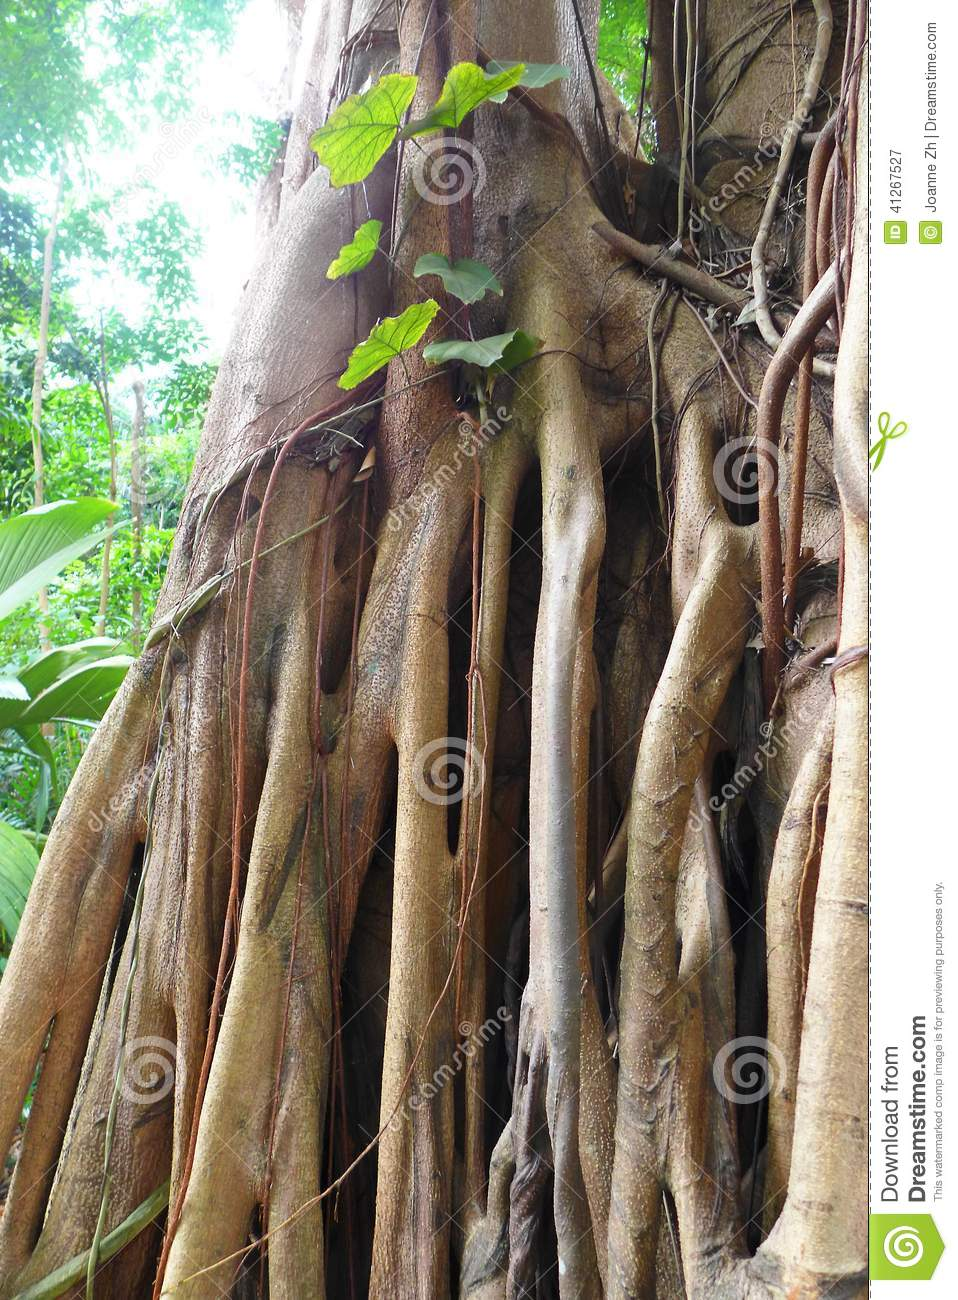 Ficus tree roots details, tropical jungle